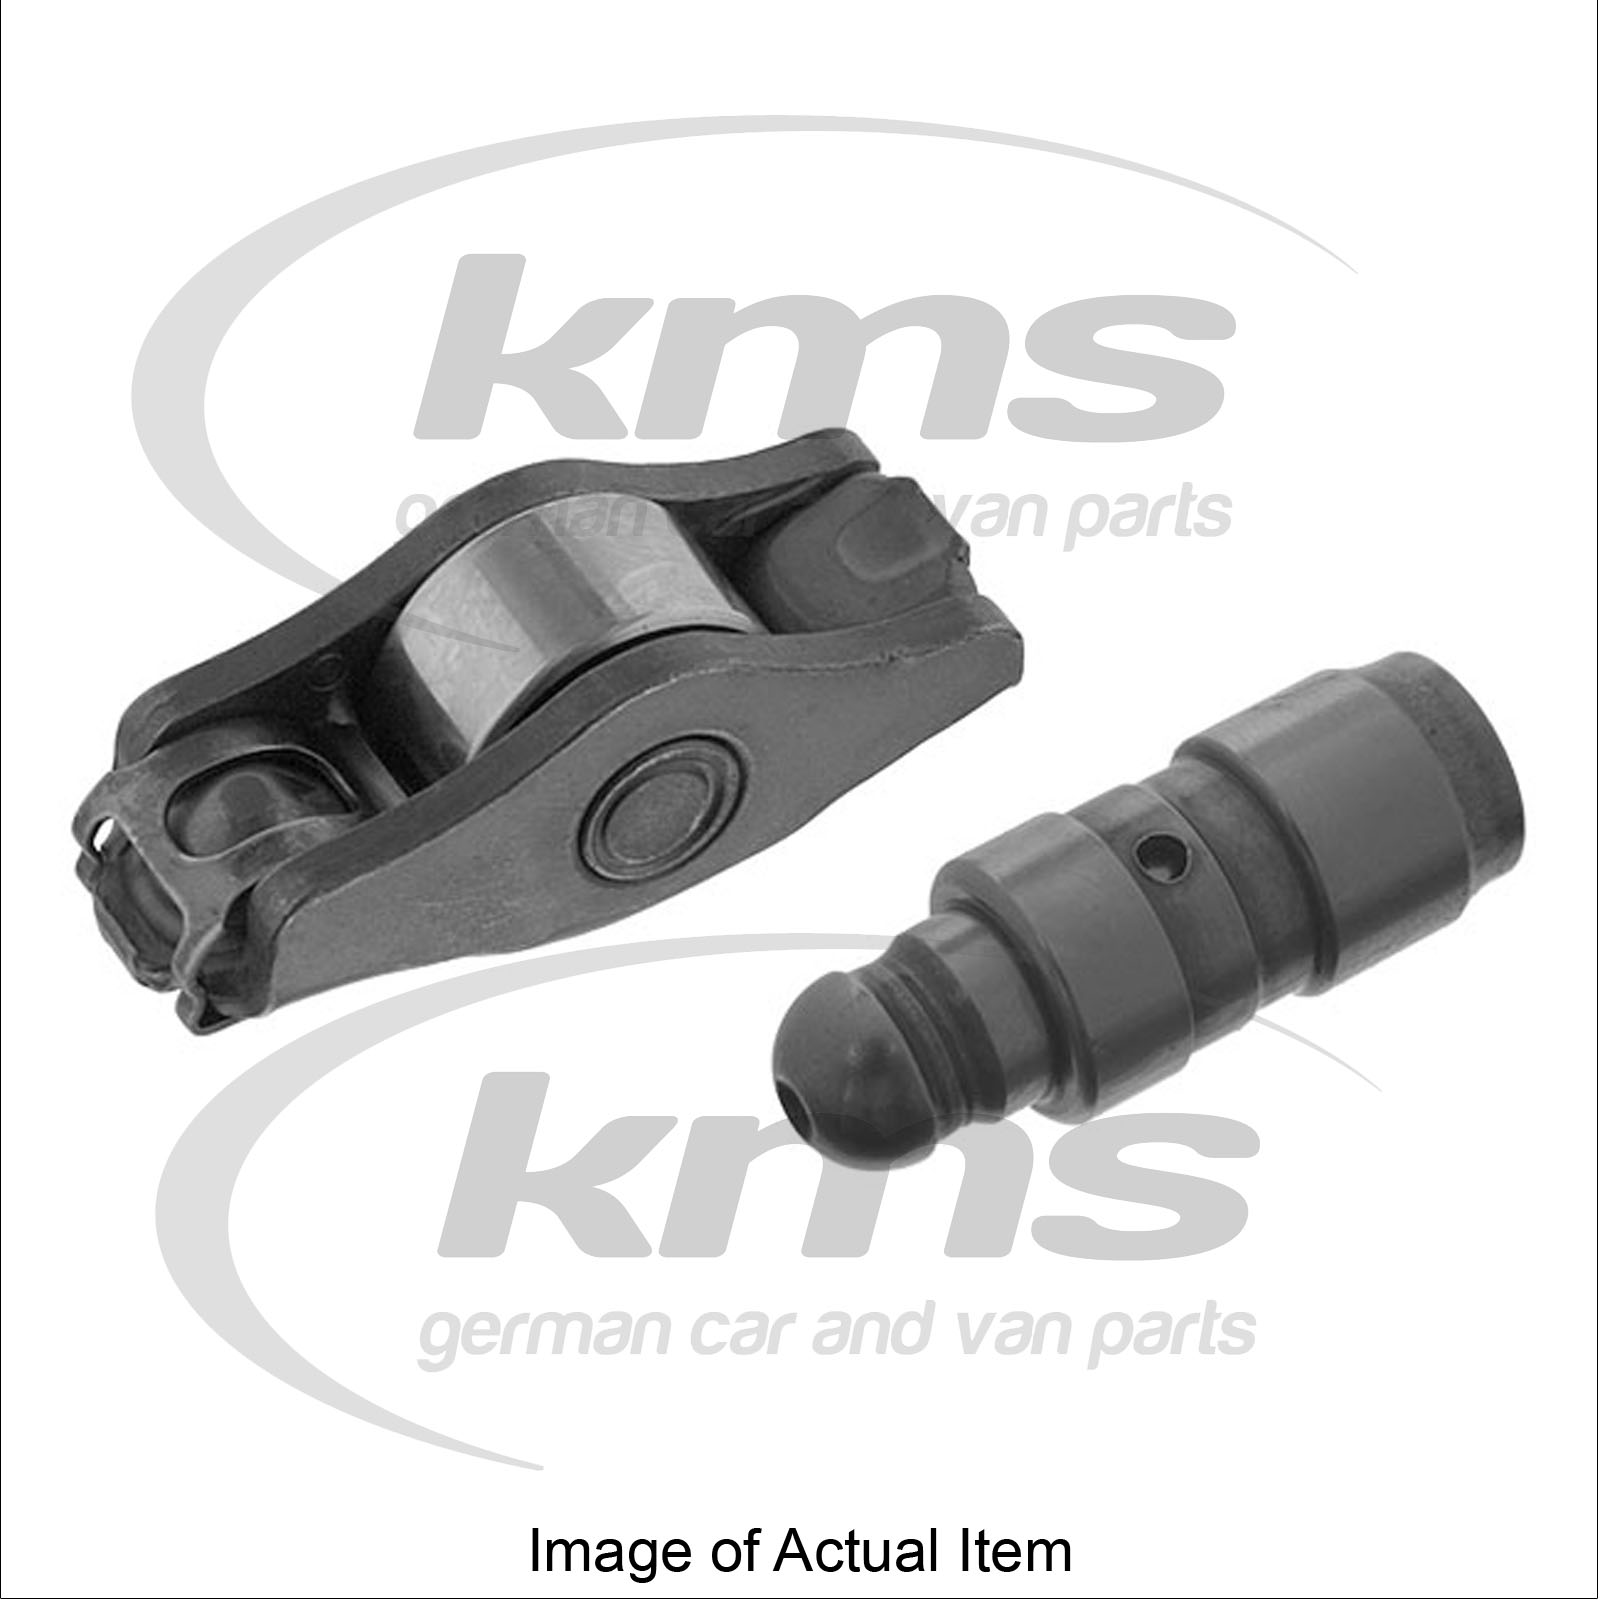 HYDRAULIC CAM FOLLOWER KIT Skoda Superb Estate TDI 105 (2008-) 1.6L - 104 BHP To